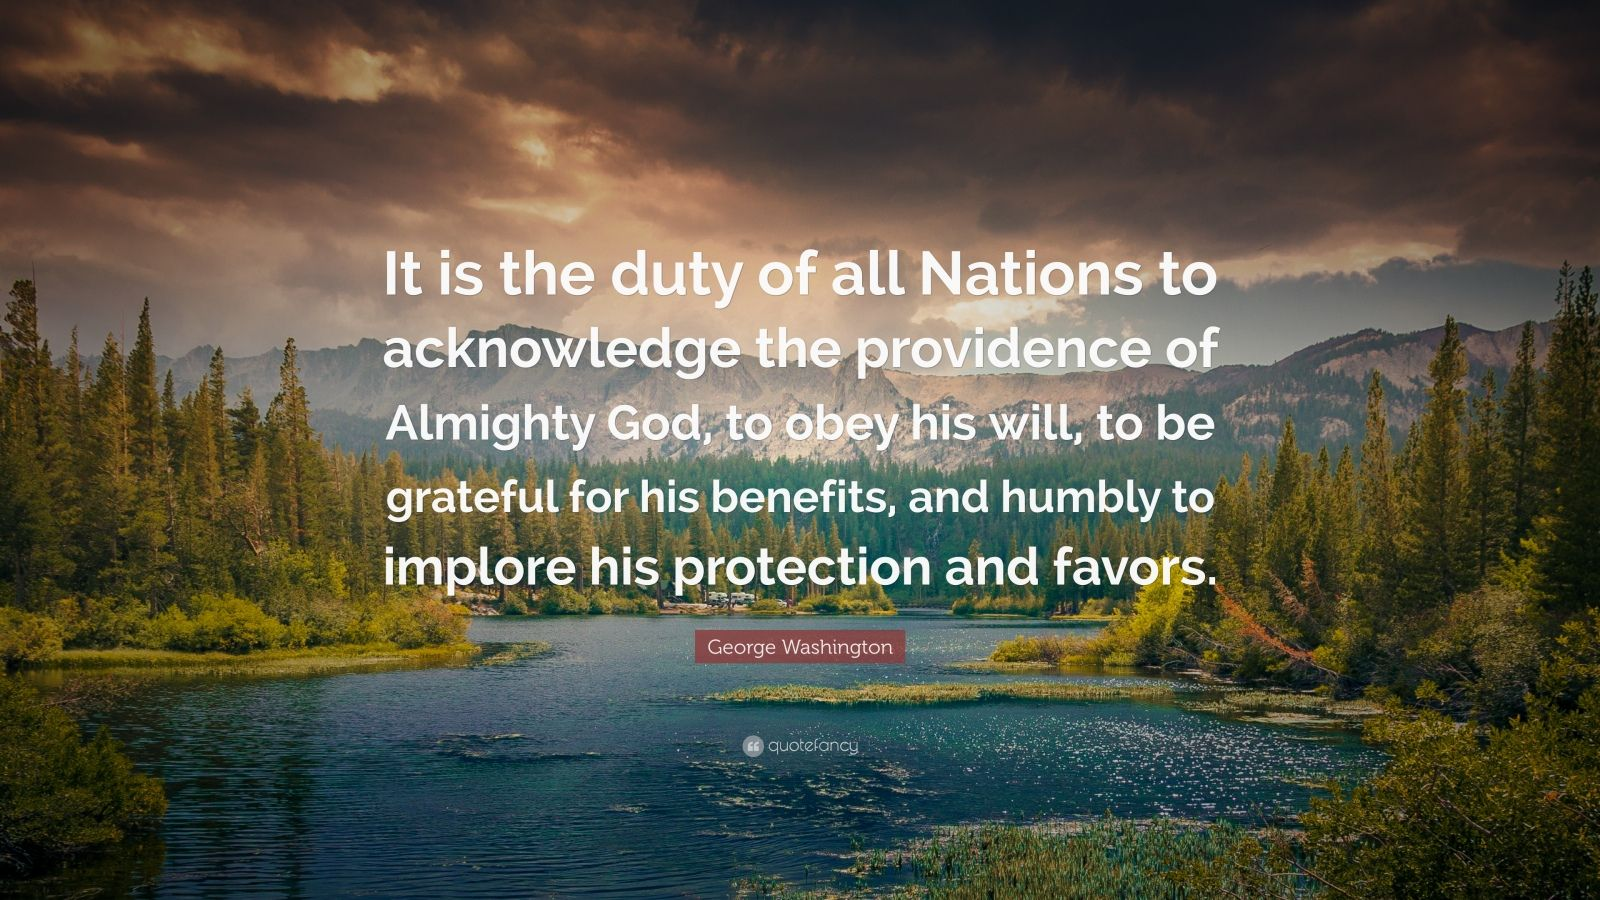 """George Washington Quote: """"It is the duty of all Nations to acknowledge the providence of Almighty God, to obey his will, to be grateful for his benefits, and humbly to implore his protection and favors."""""""